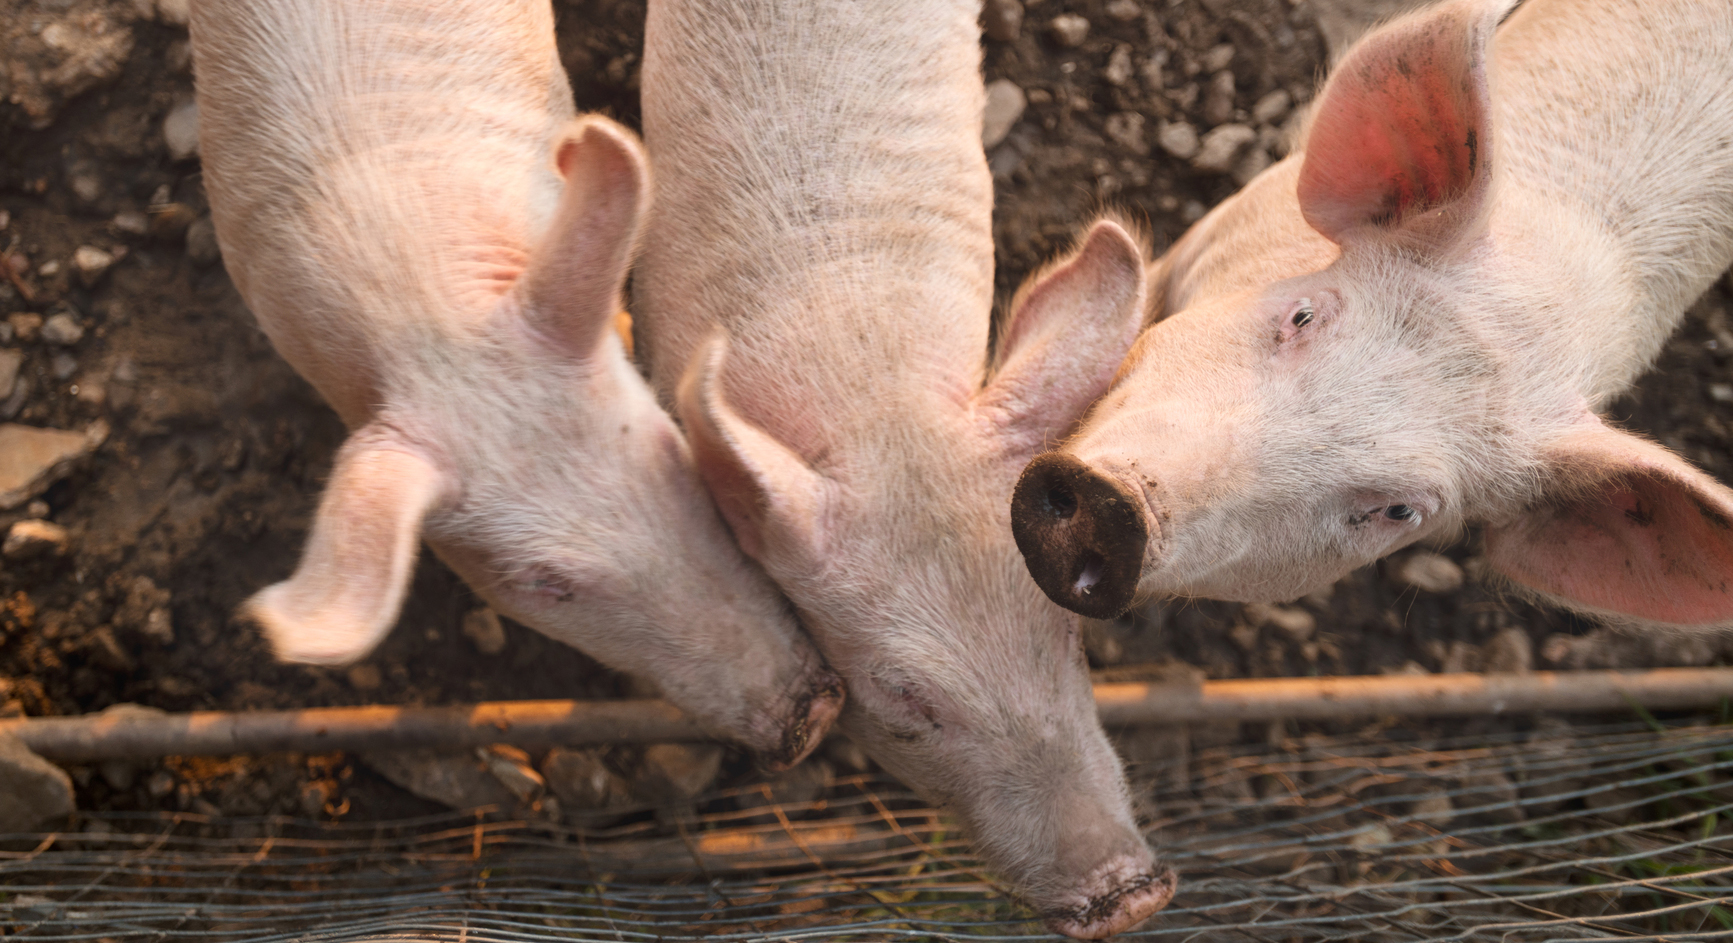 New Antibiotic-Resistant Gene Found in Pigs: Another Reason to Go Organic?